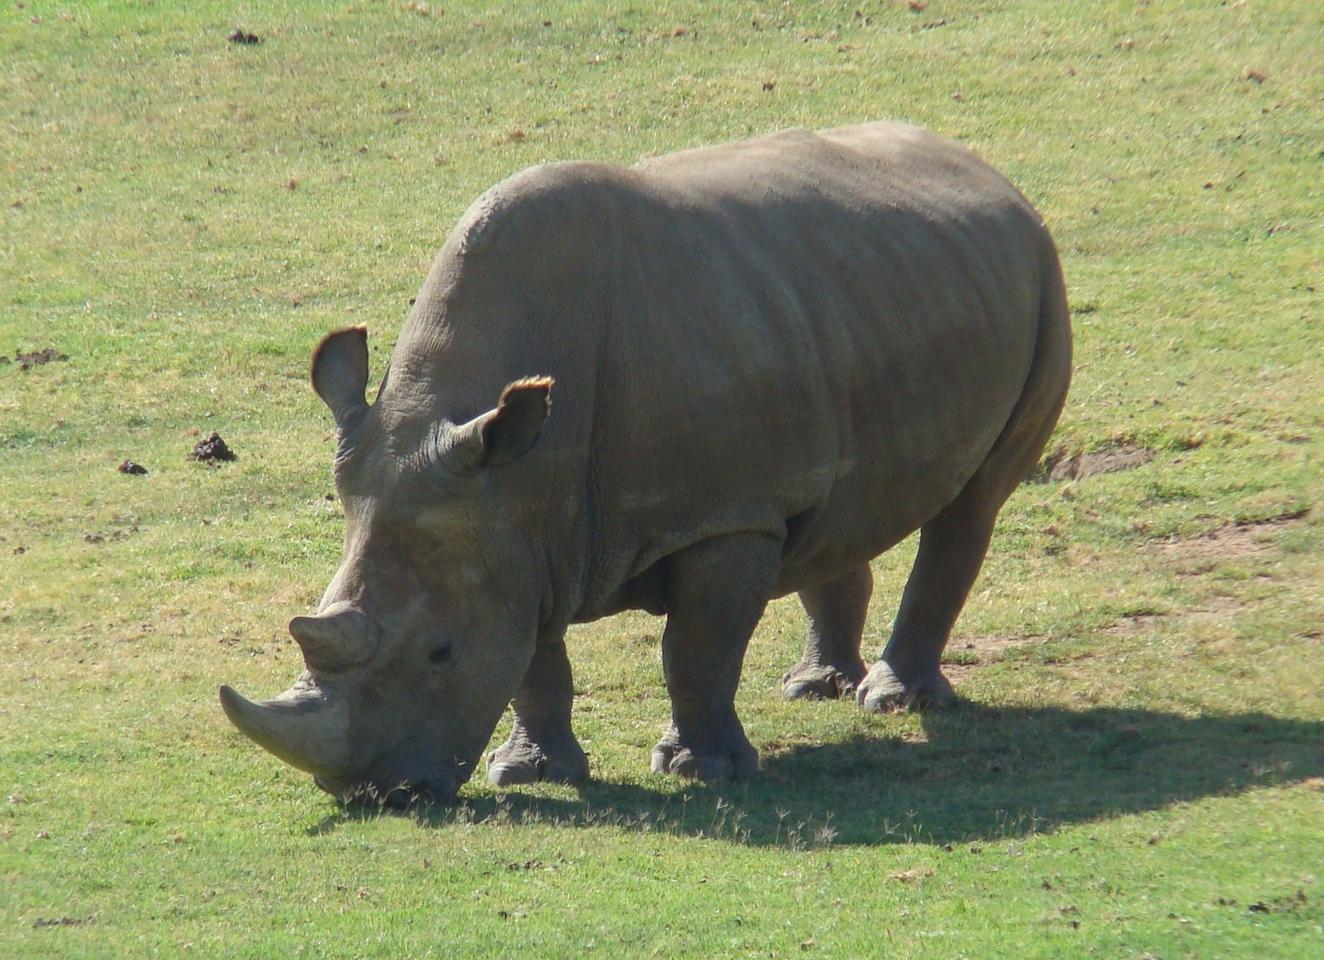 The researchers hope to develop IVF treatment for the rhinos, and eventually reprogram stored cells into stem cells to create a diverse new population